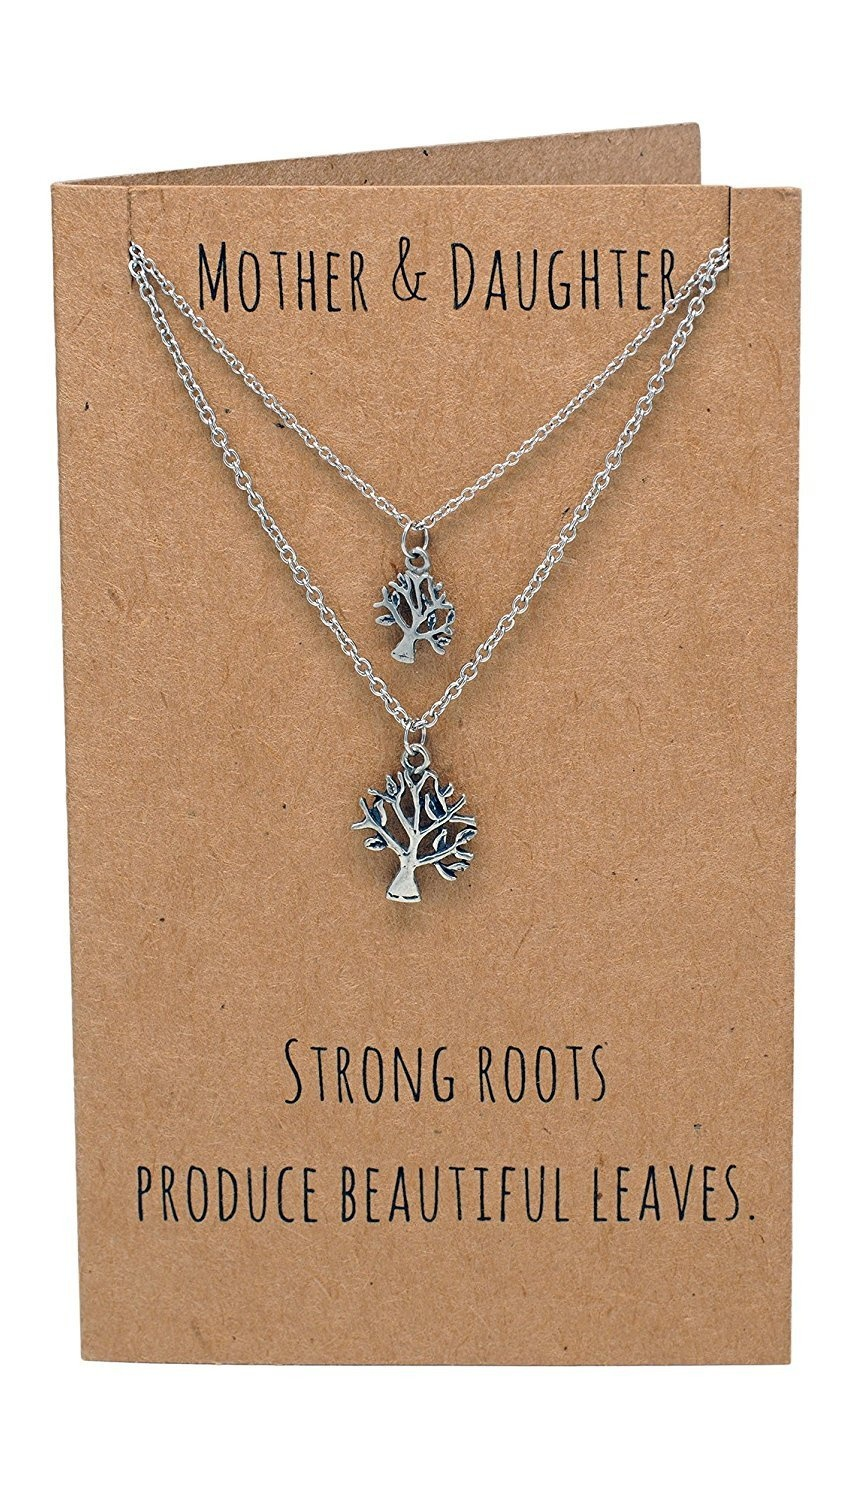 Tree Of Life Pendant Mother Daughter Necklace Set For 2 Birthday Presents Mom And Daughters Mothers Day Gifts With Inspiration Quote On Greeting Card